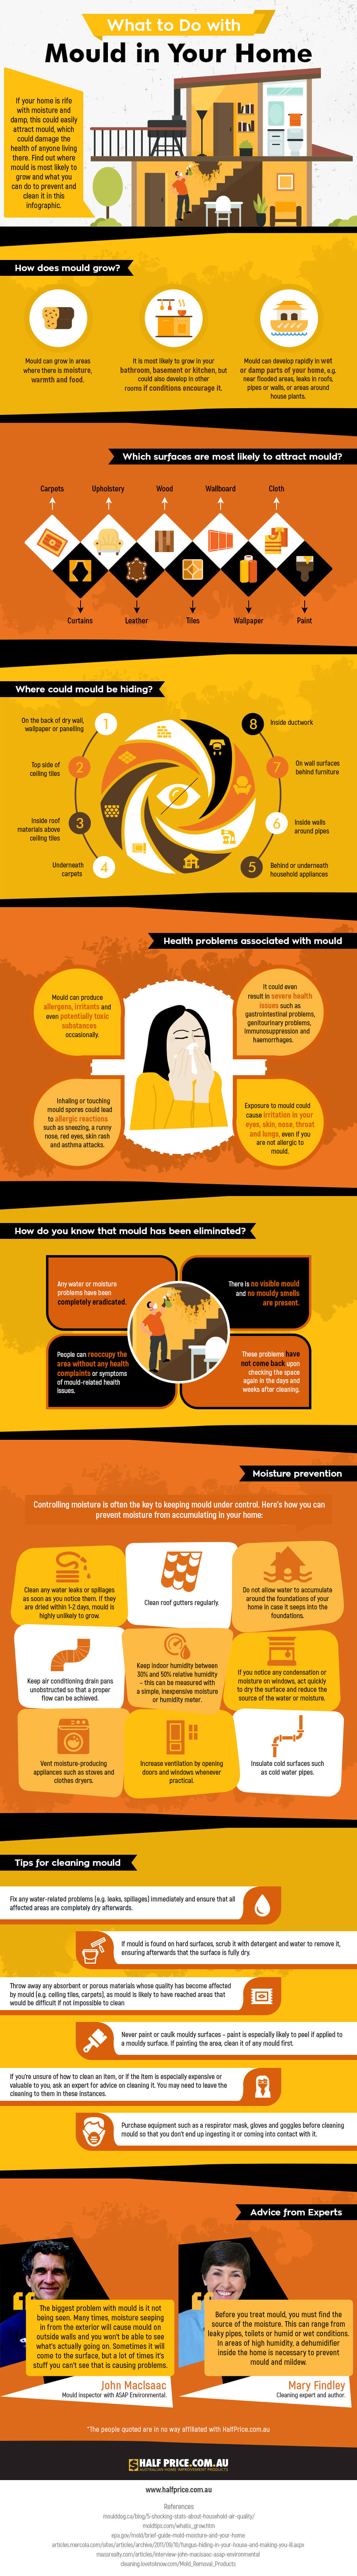 How to Make Your Home Mold-Free Permanently - Infographic